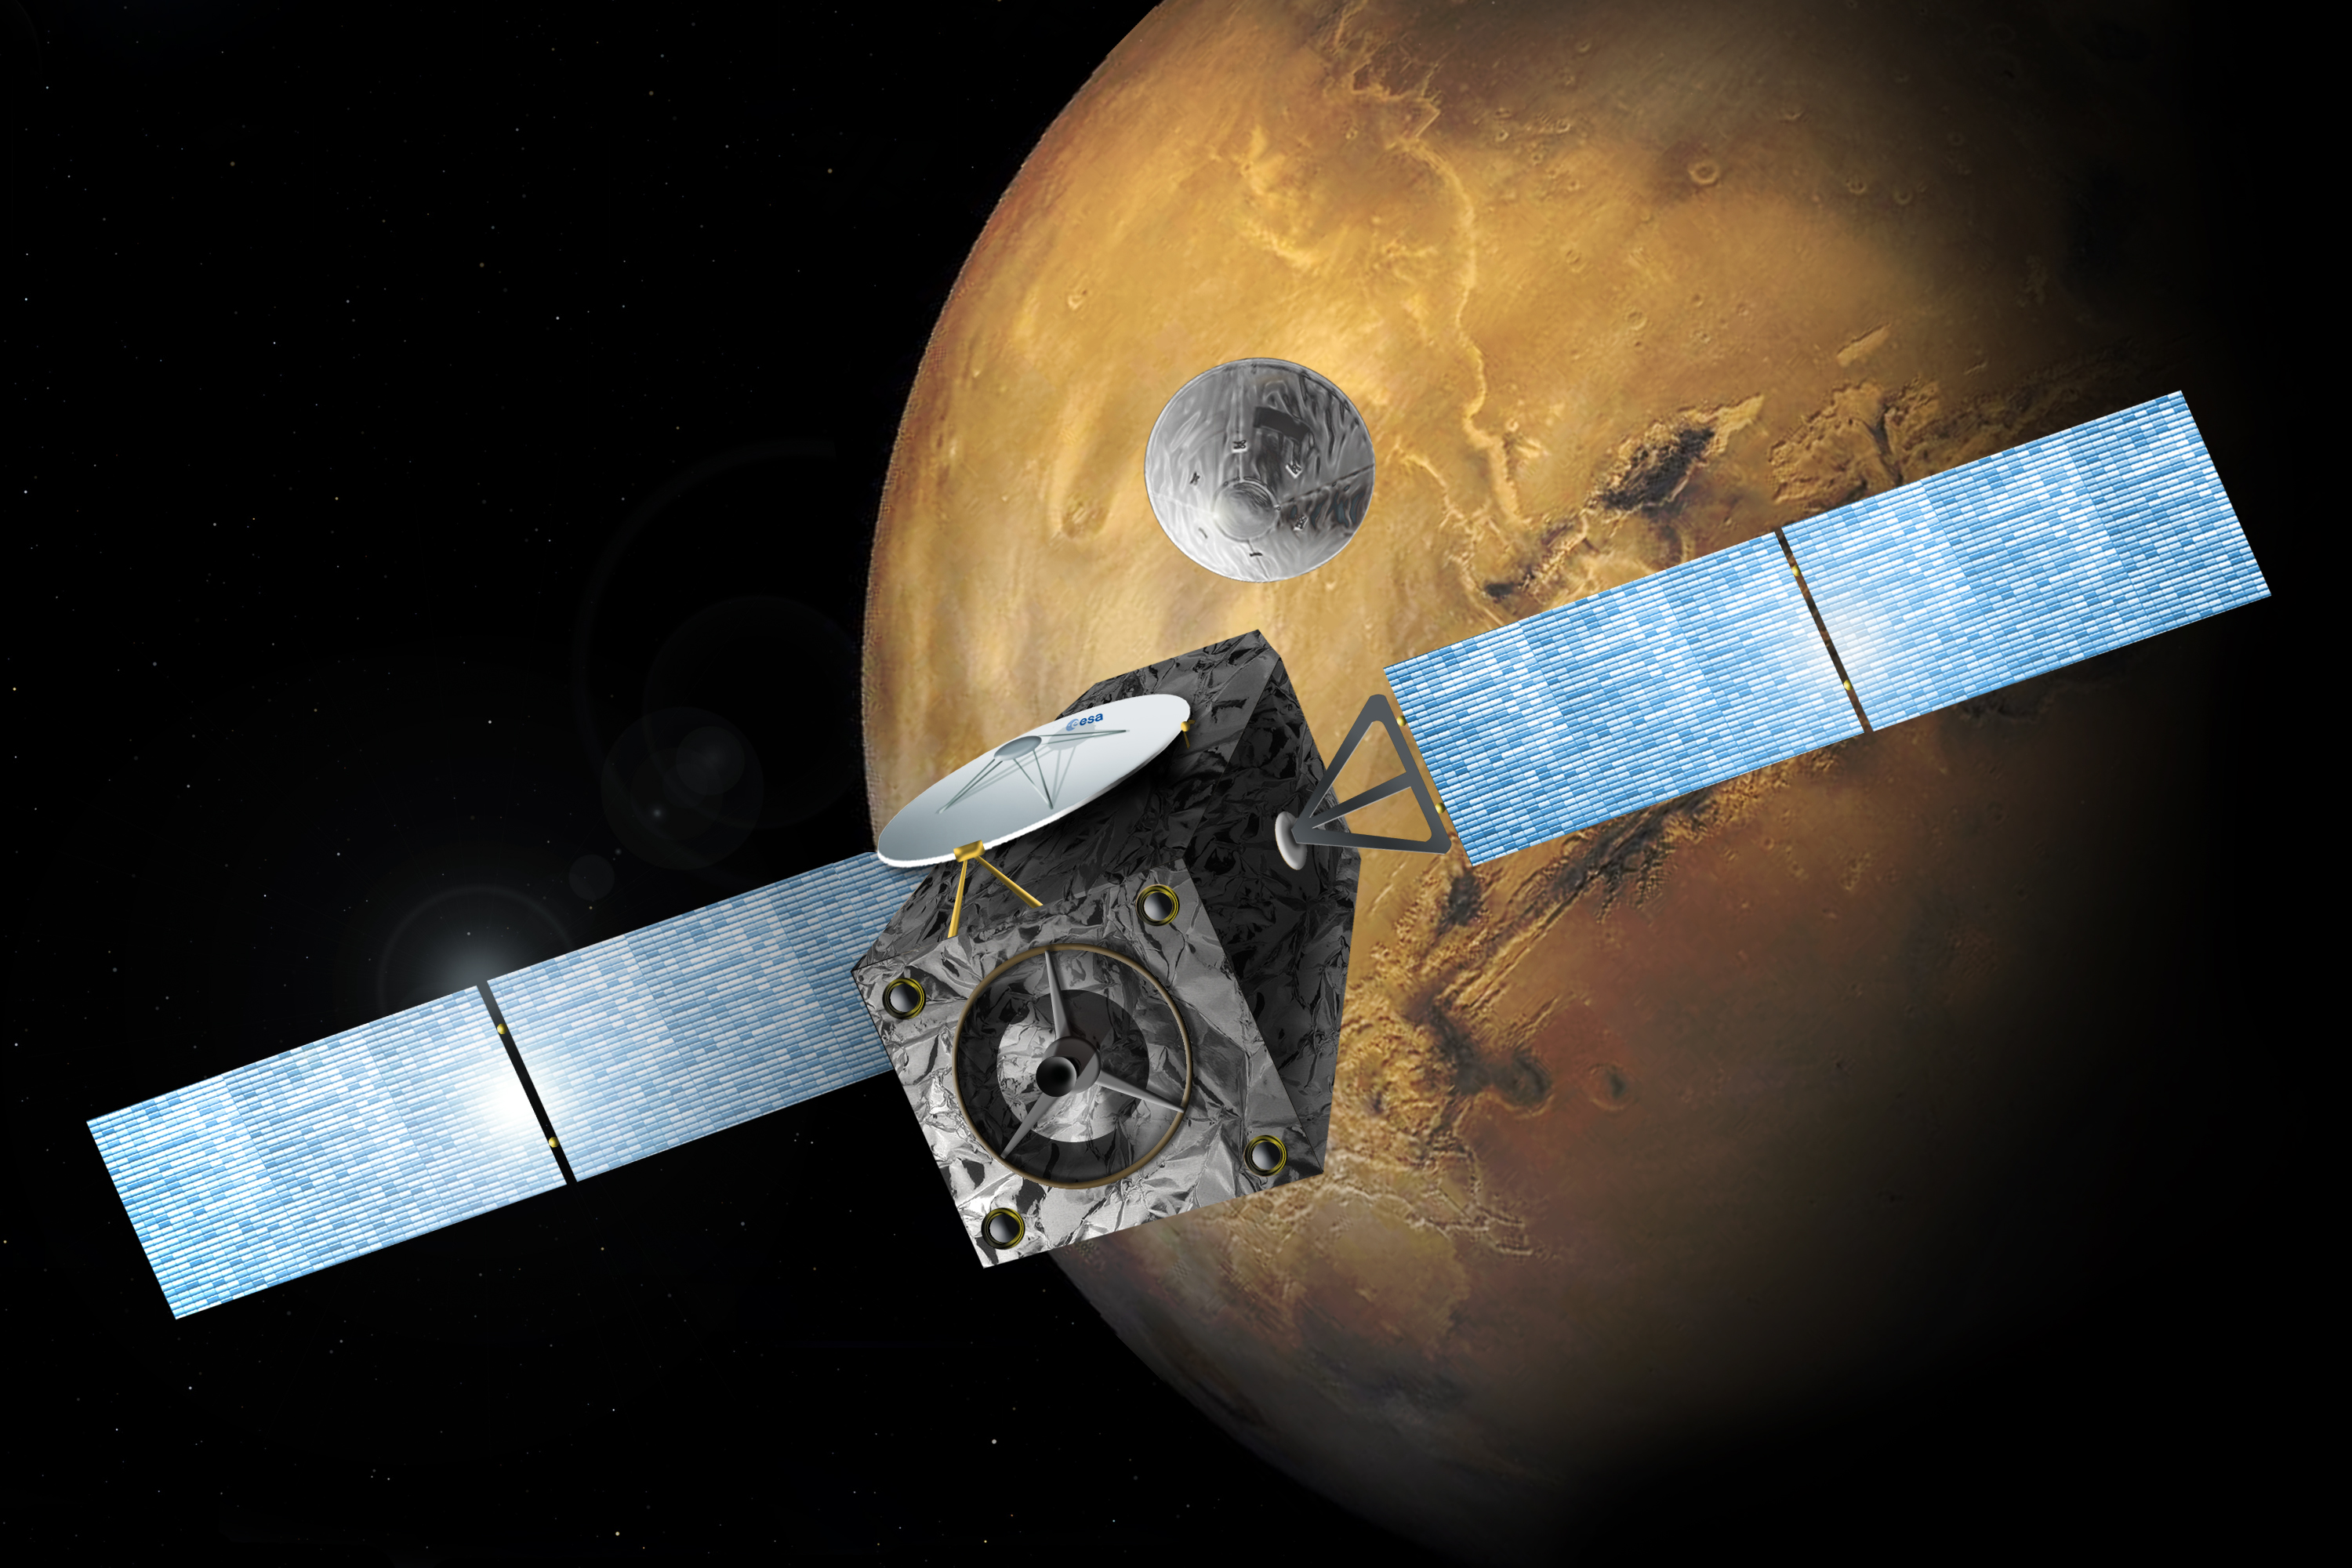 European-Russian Mission to Mars Launches Next Week